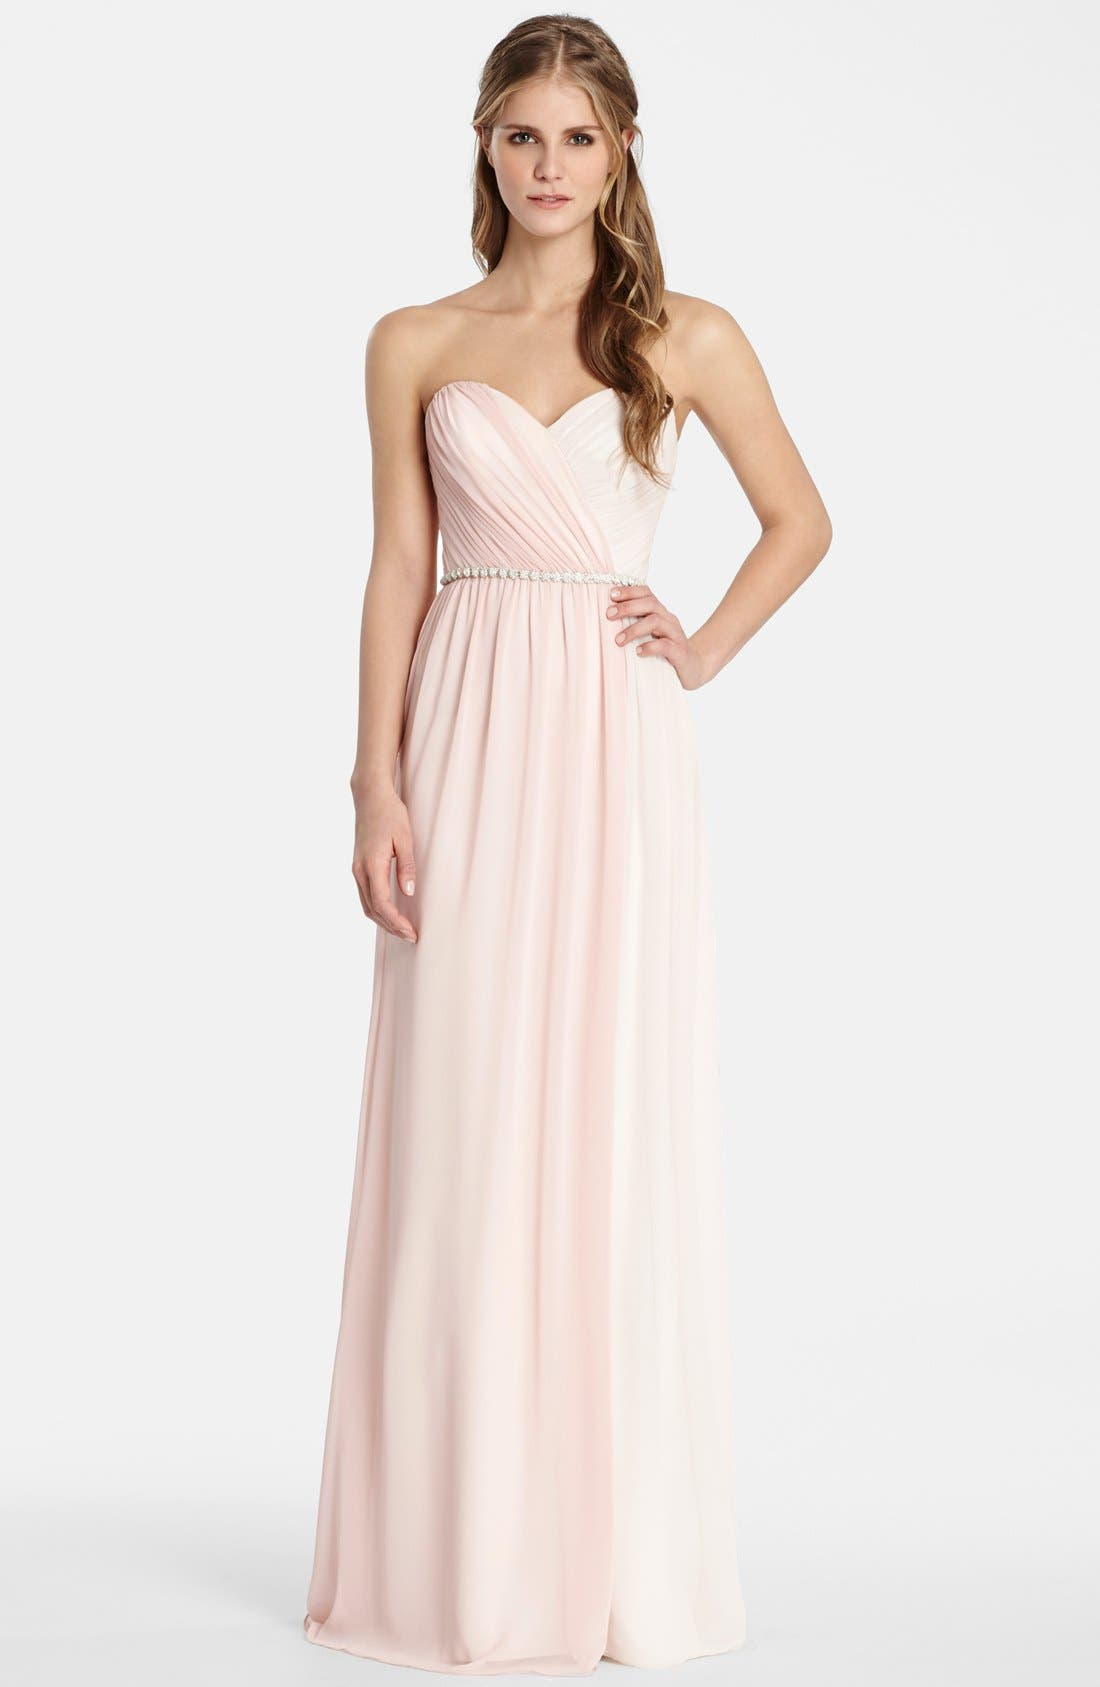 Main Image - Jim Hjelm Occasions Two Tone Strapless Chiffon Gown